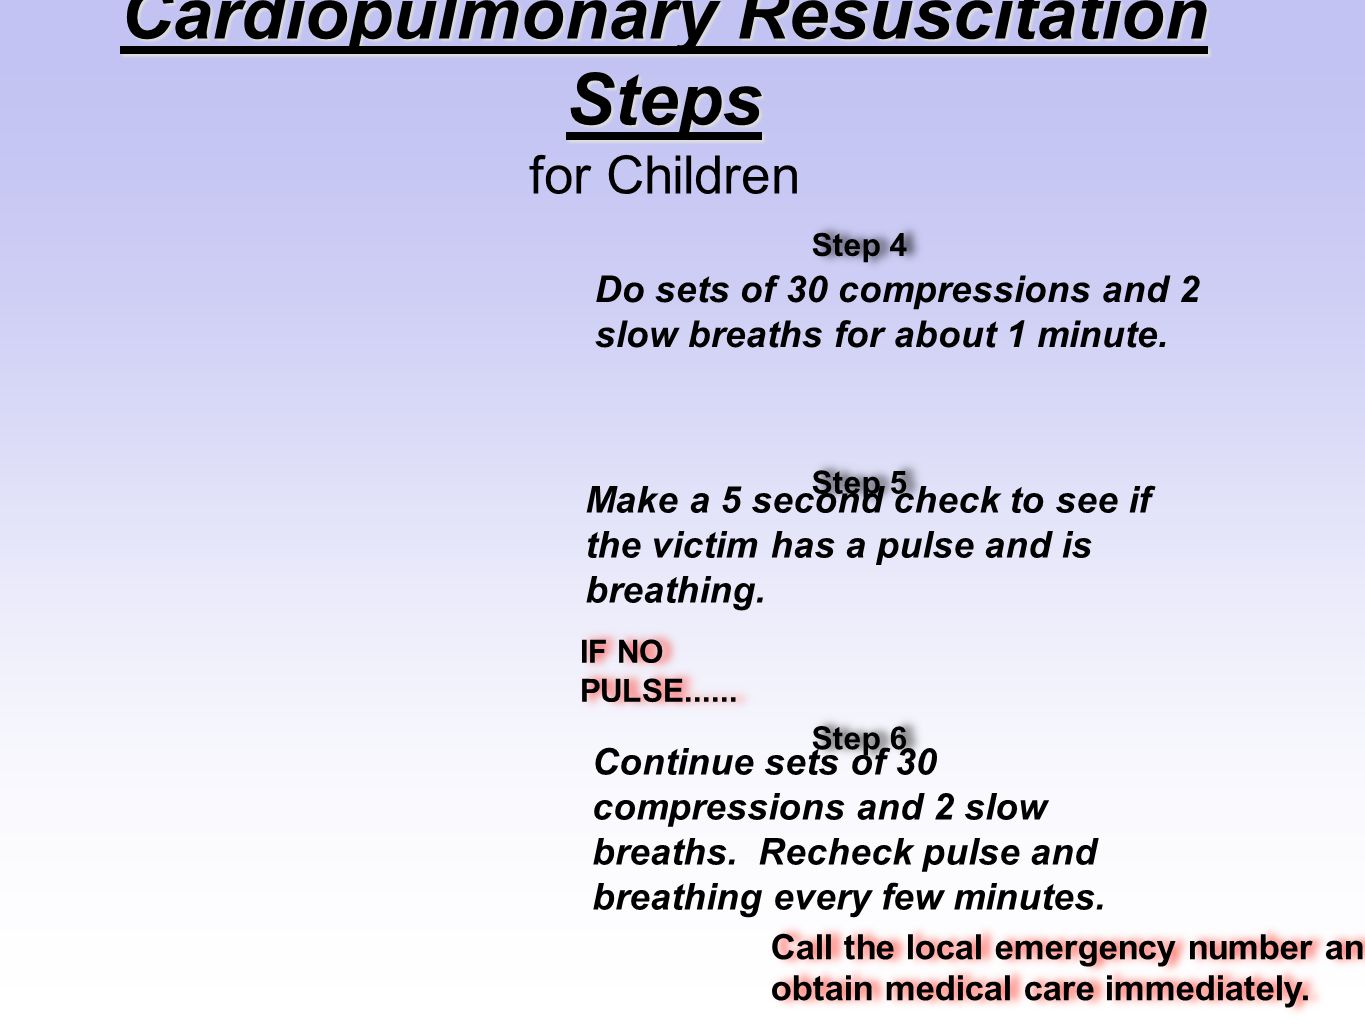 Cardiopulmonary Resuscitation Steps for Children Do sets of 30 compressions and 2 slow breaths for about 1 minute. Make a 5 second check to see if the